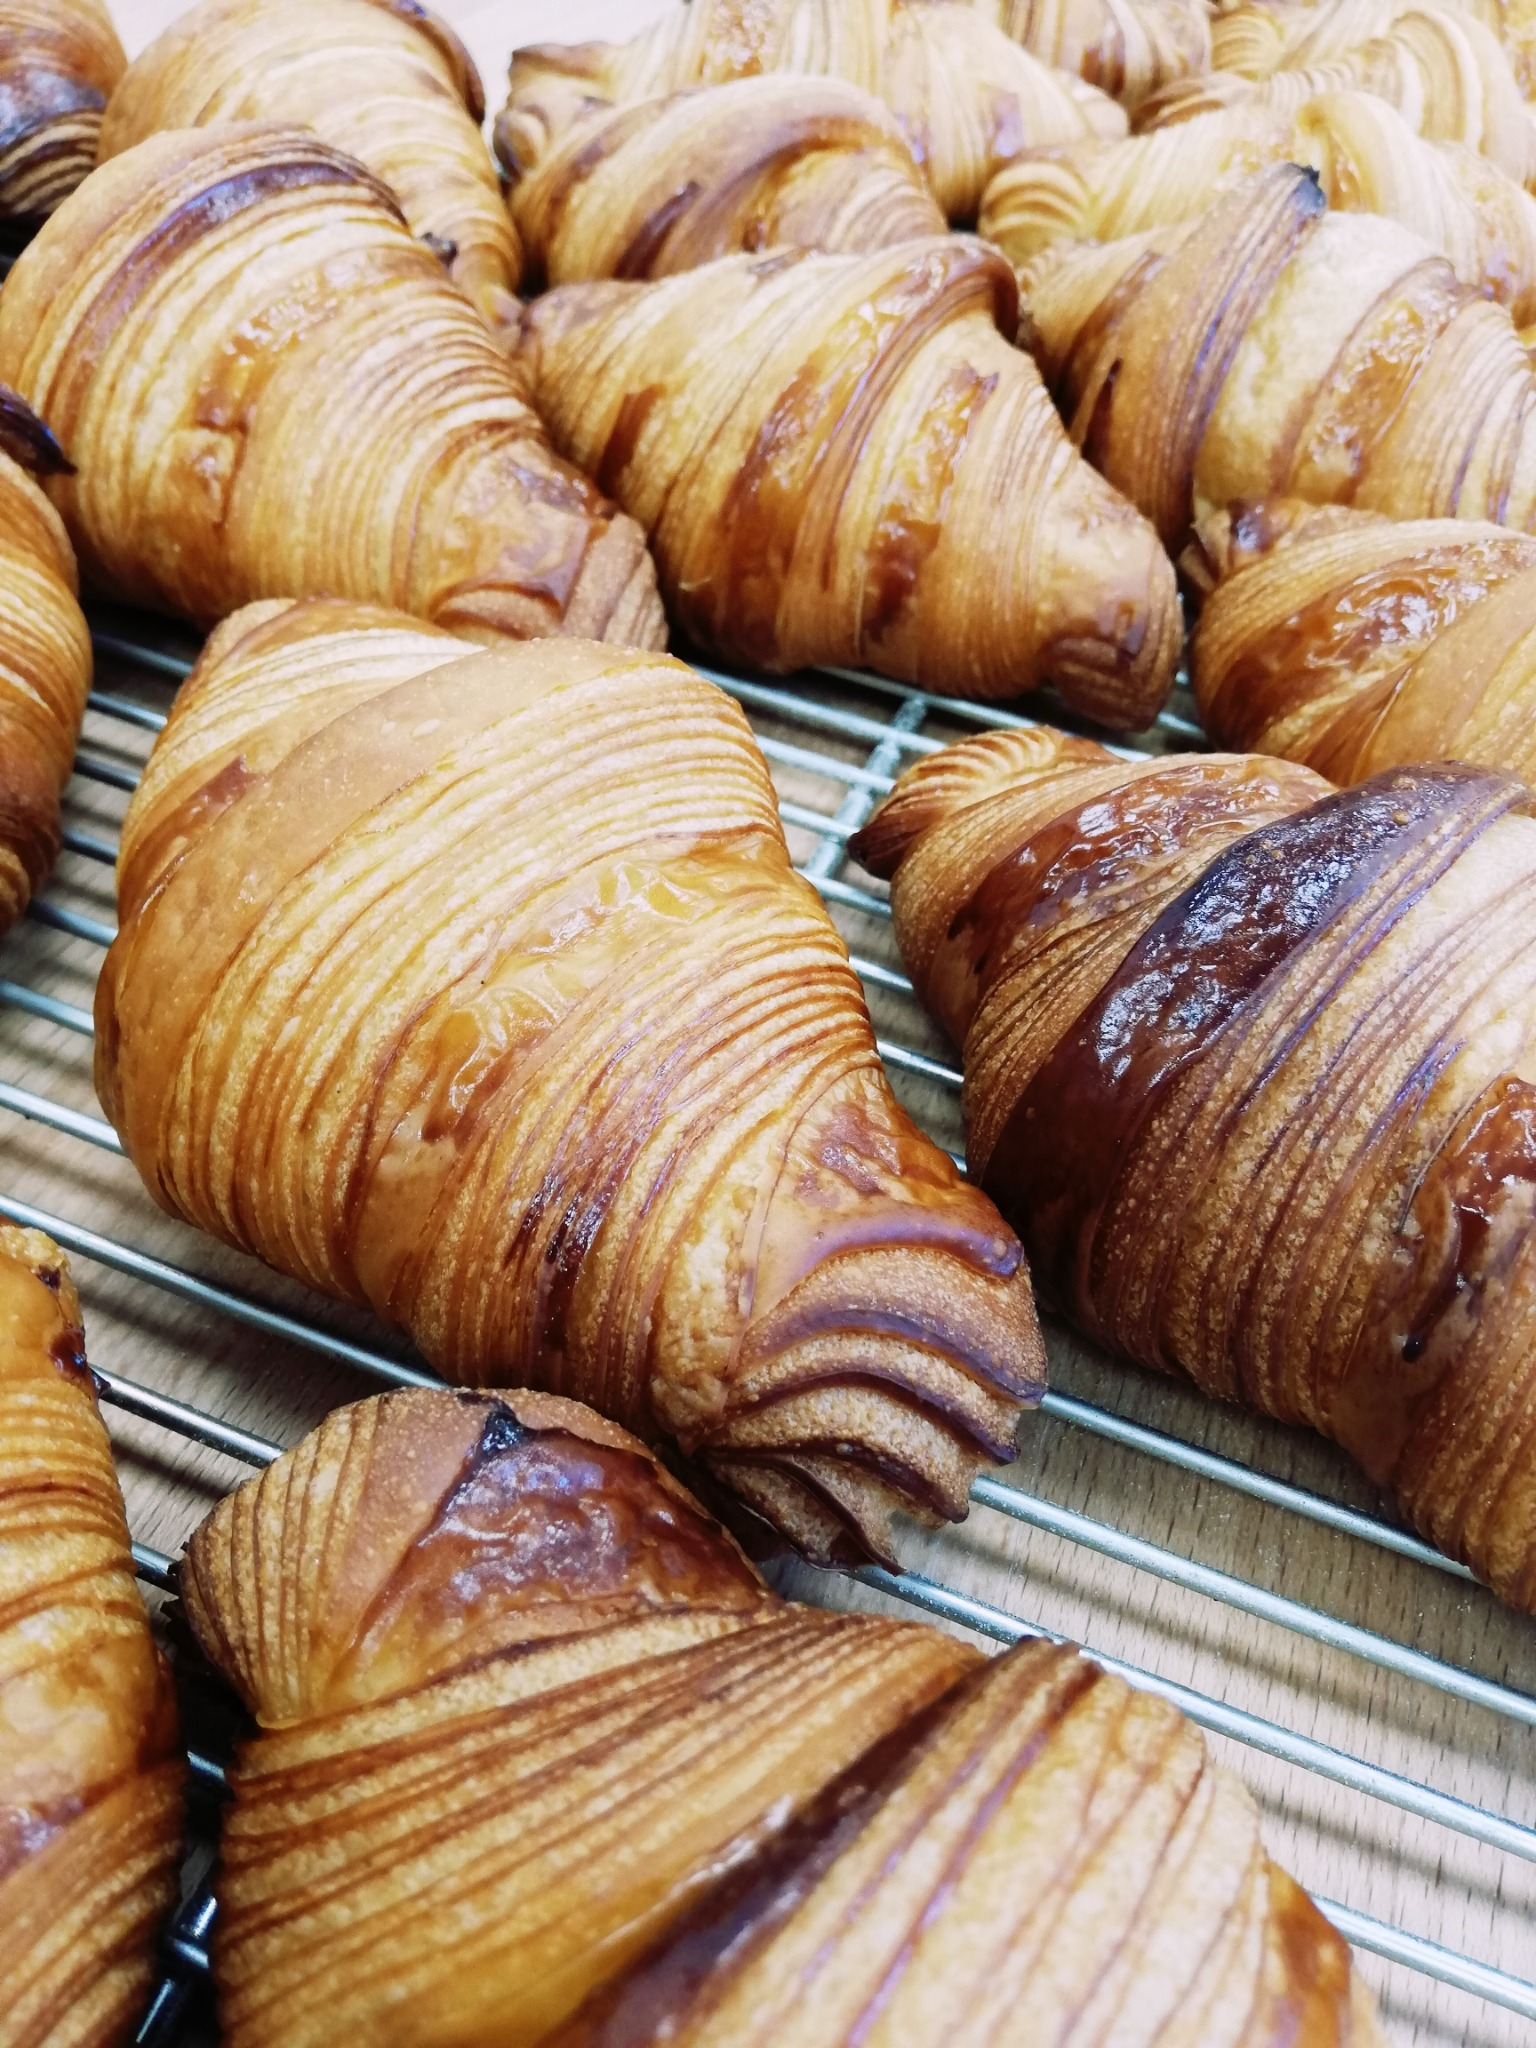 (THURS) Pastries & Sweet